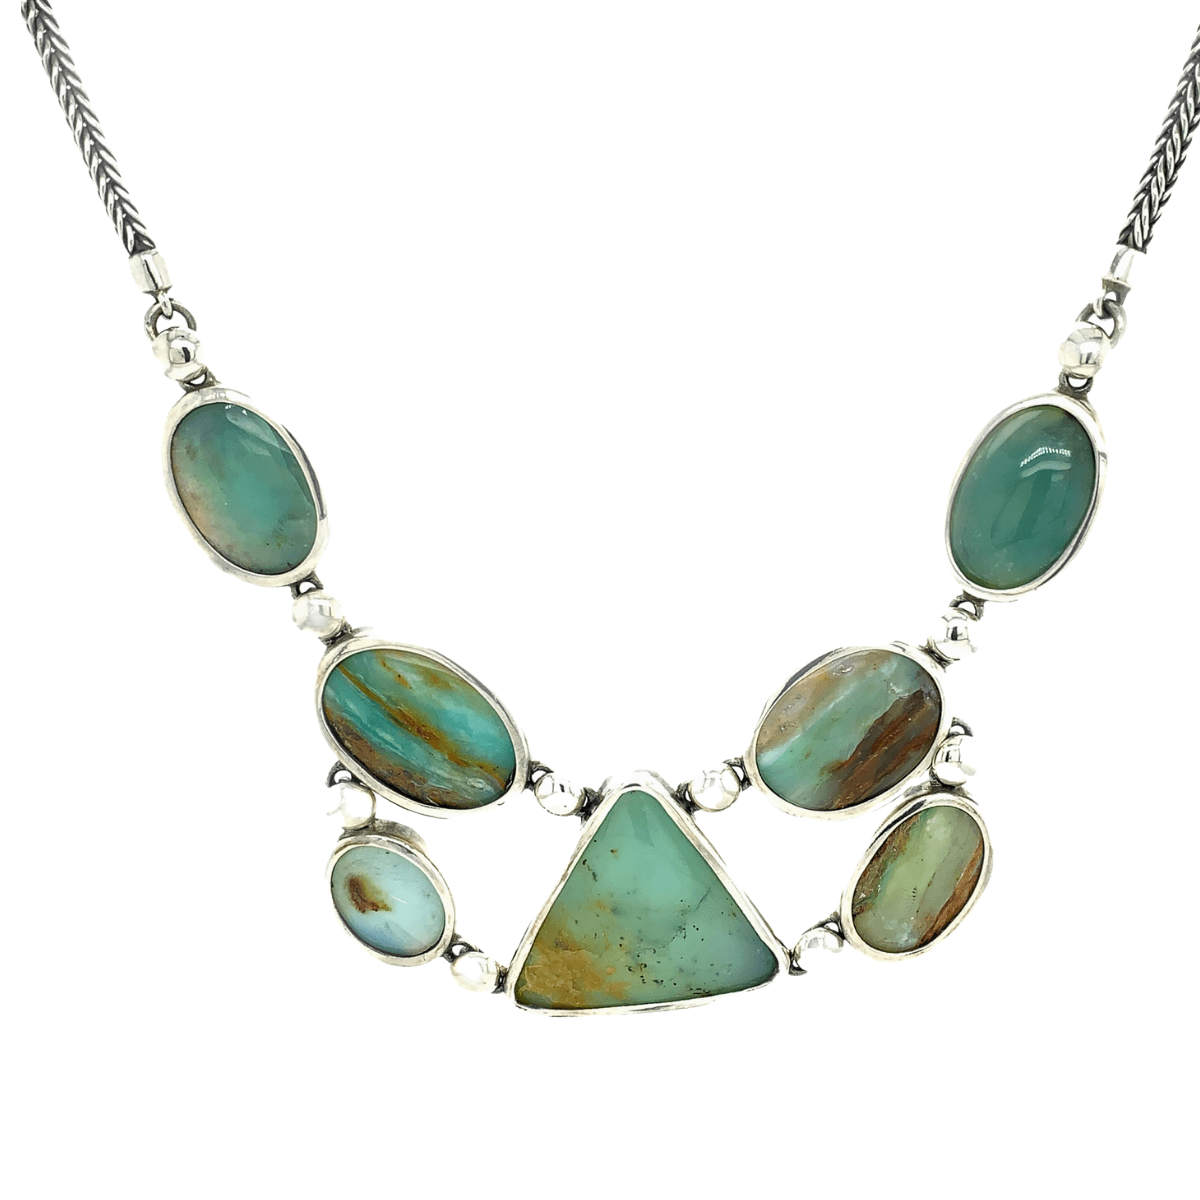 Andean Opal & Sterling Silver Geometric Necklace - Qinti - The Peruvian Shop